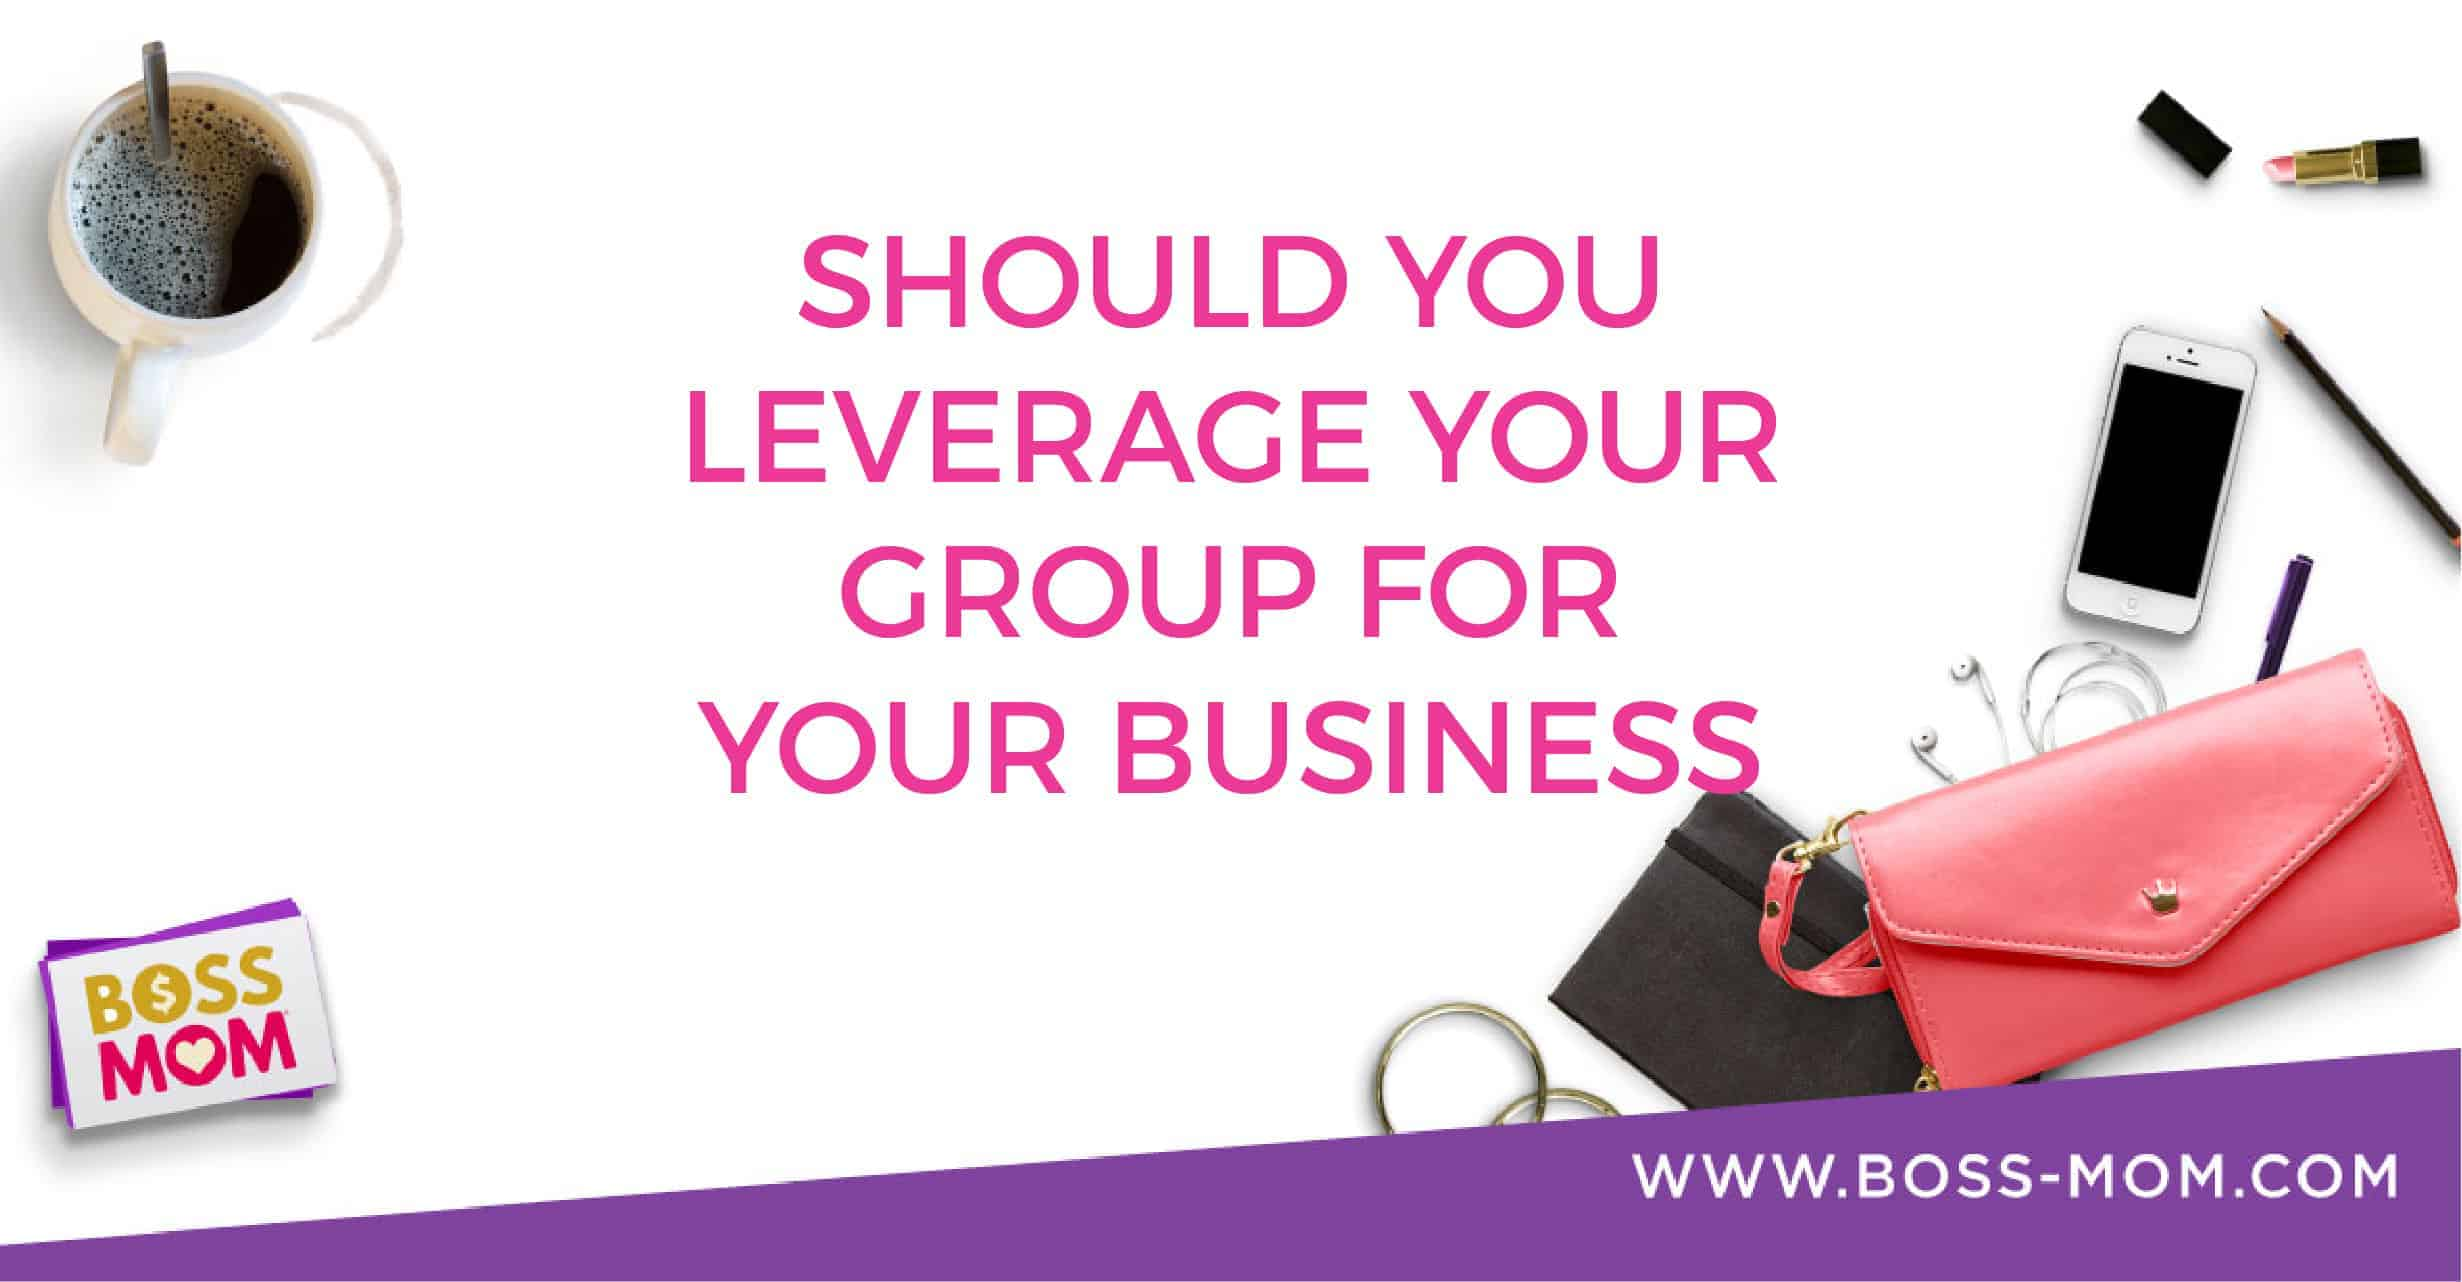 Episode 243: Should you Leverage Your Facebook Group for Business?